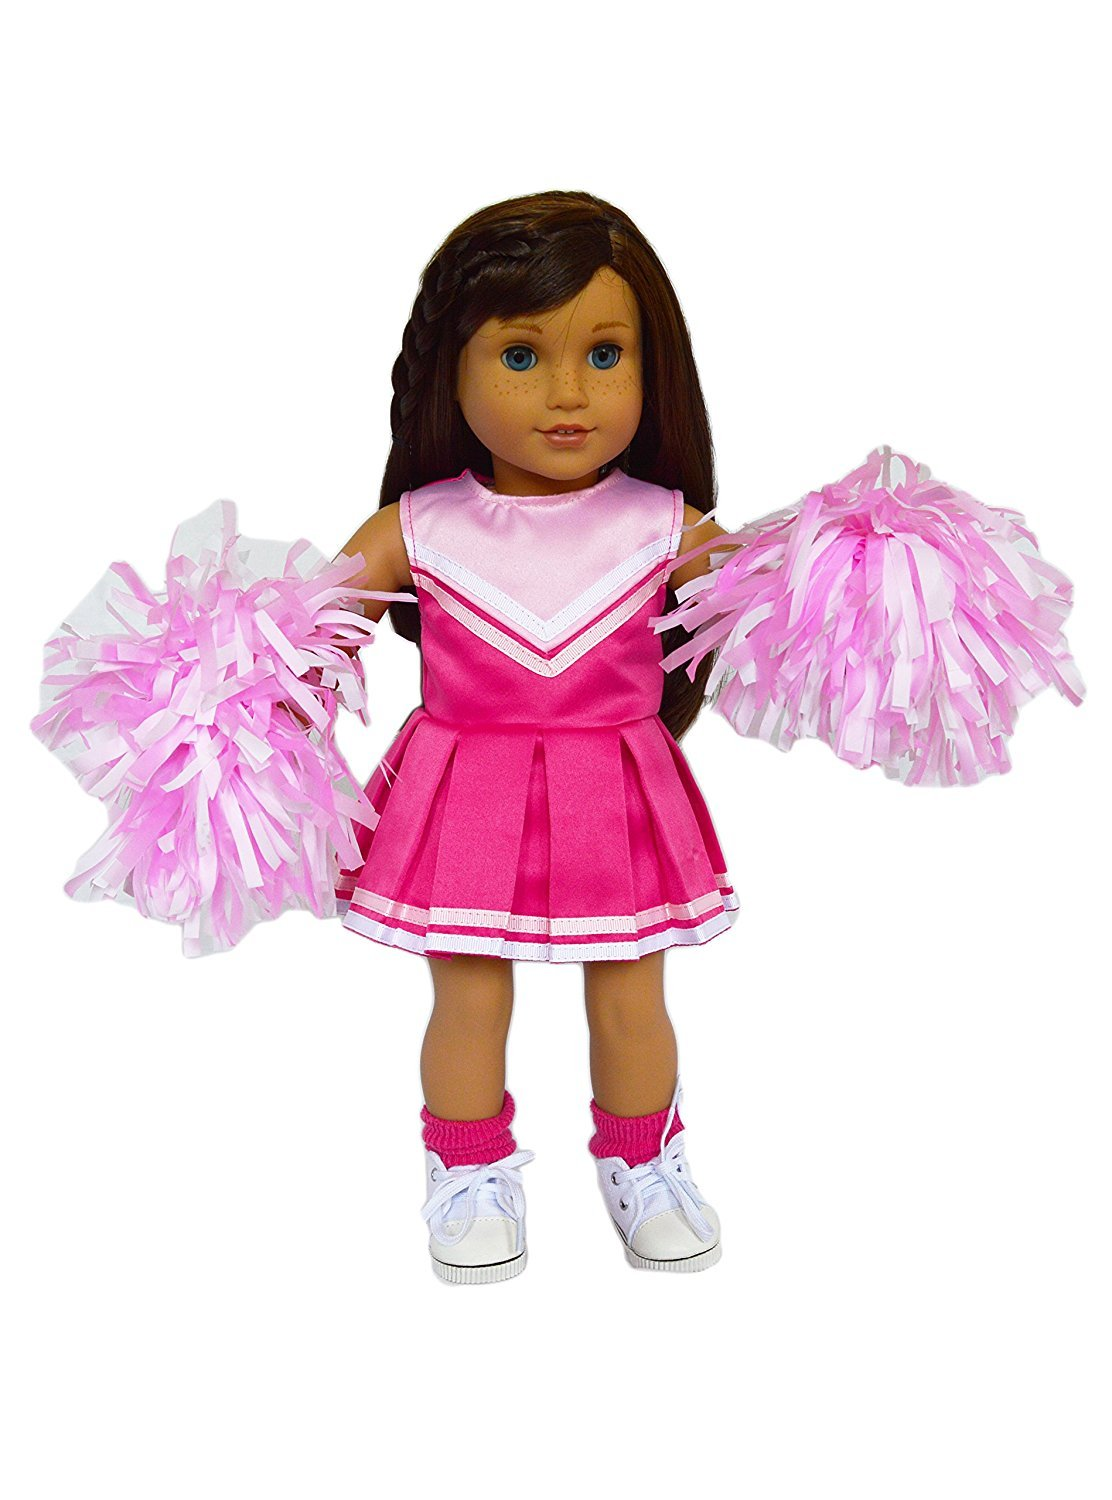 My Brittany's Pink Cheerleader Outfit for American Girl Dolls Complete with Shoes and Socks- 18 Inch American Girl Doll Clothes